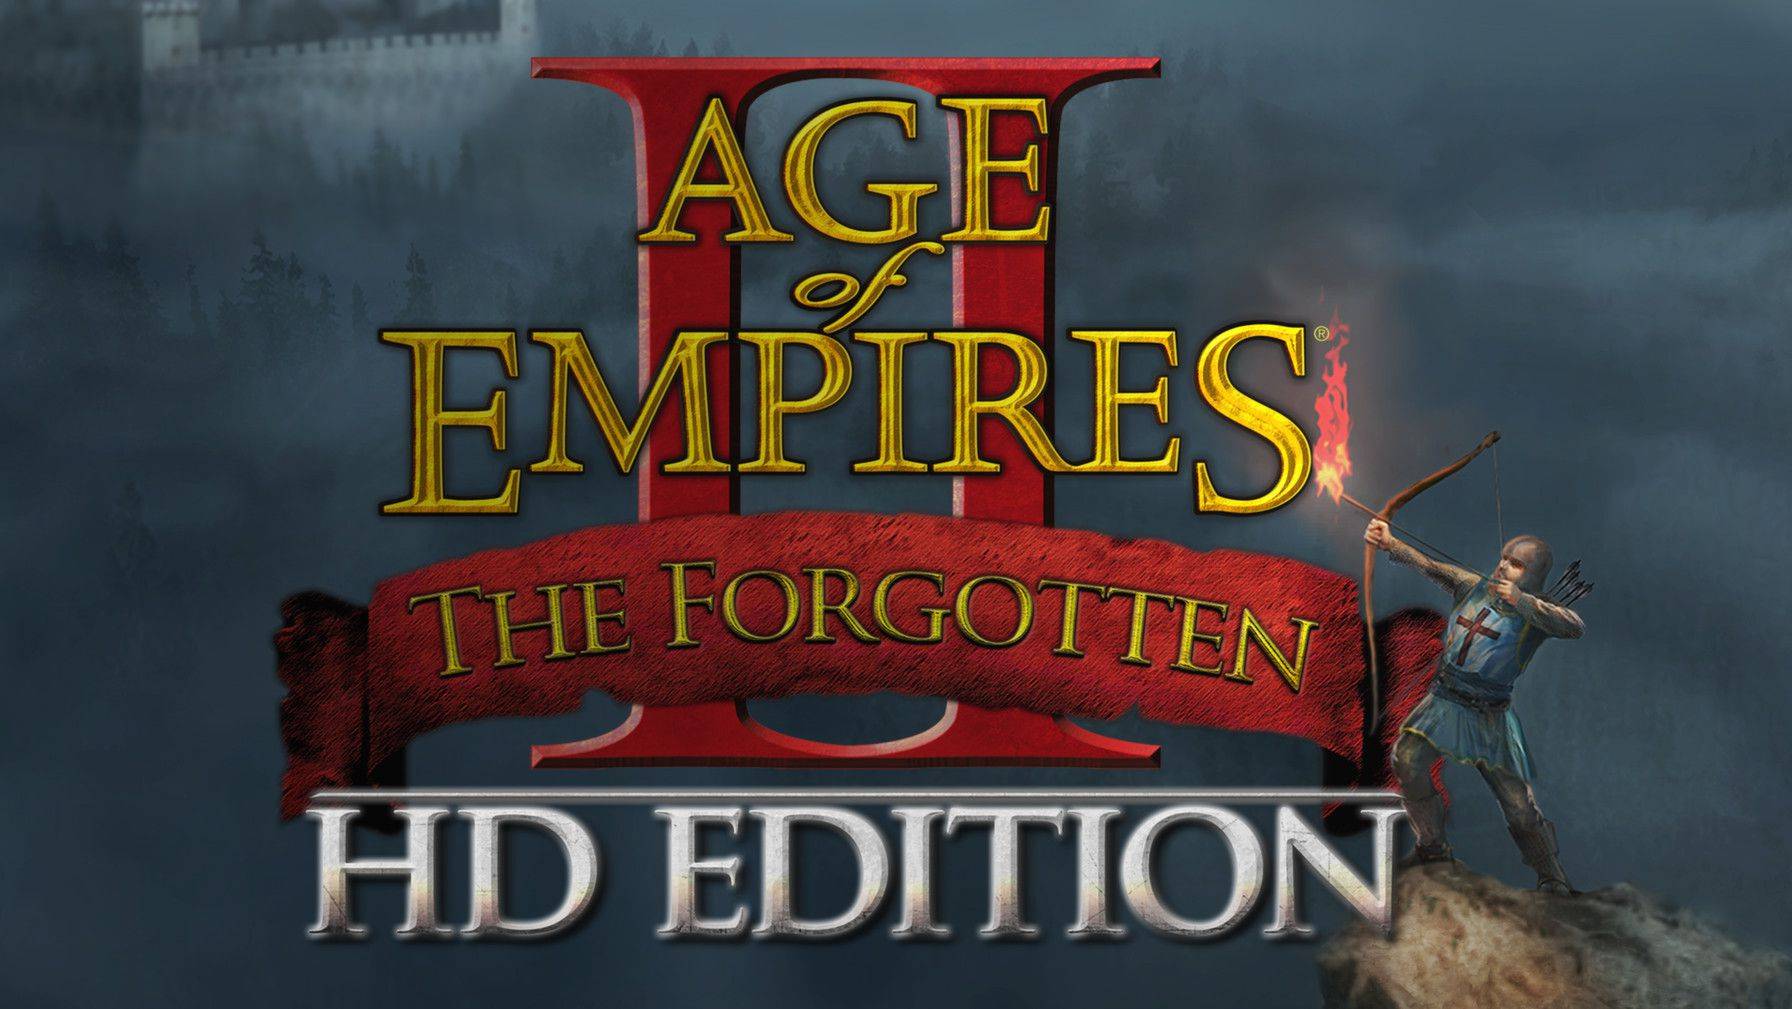 Age of Empires II HD: The Forgotten (2013)  - Jeu vidéo streaming VF gratuit complet